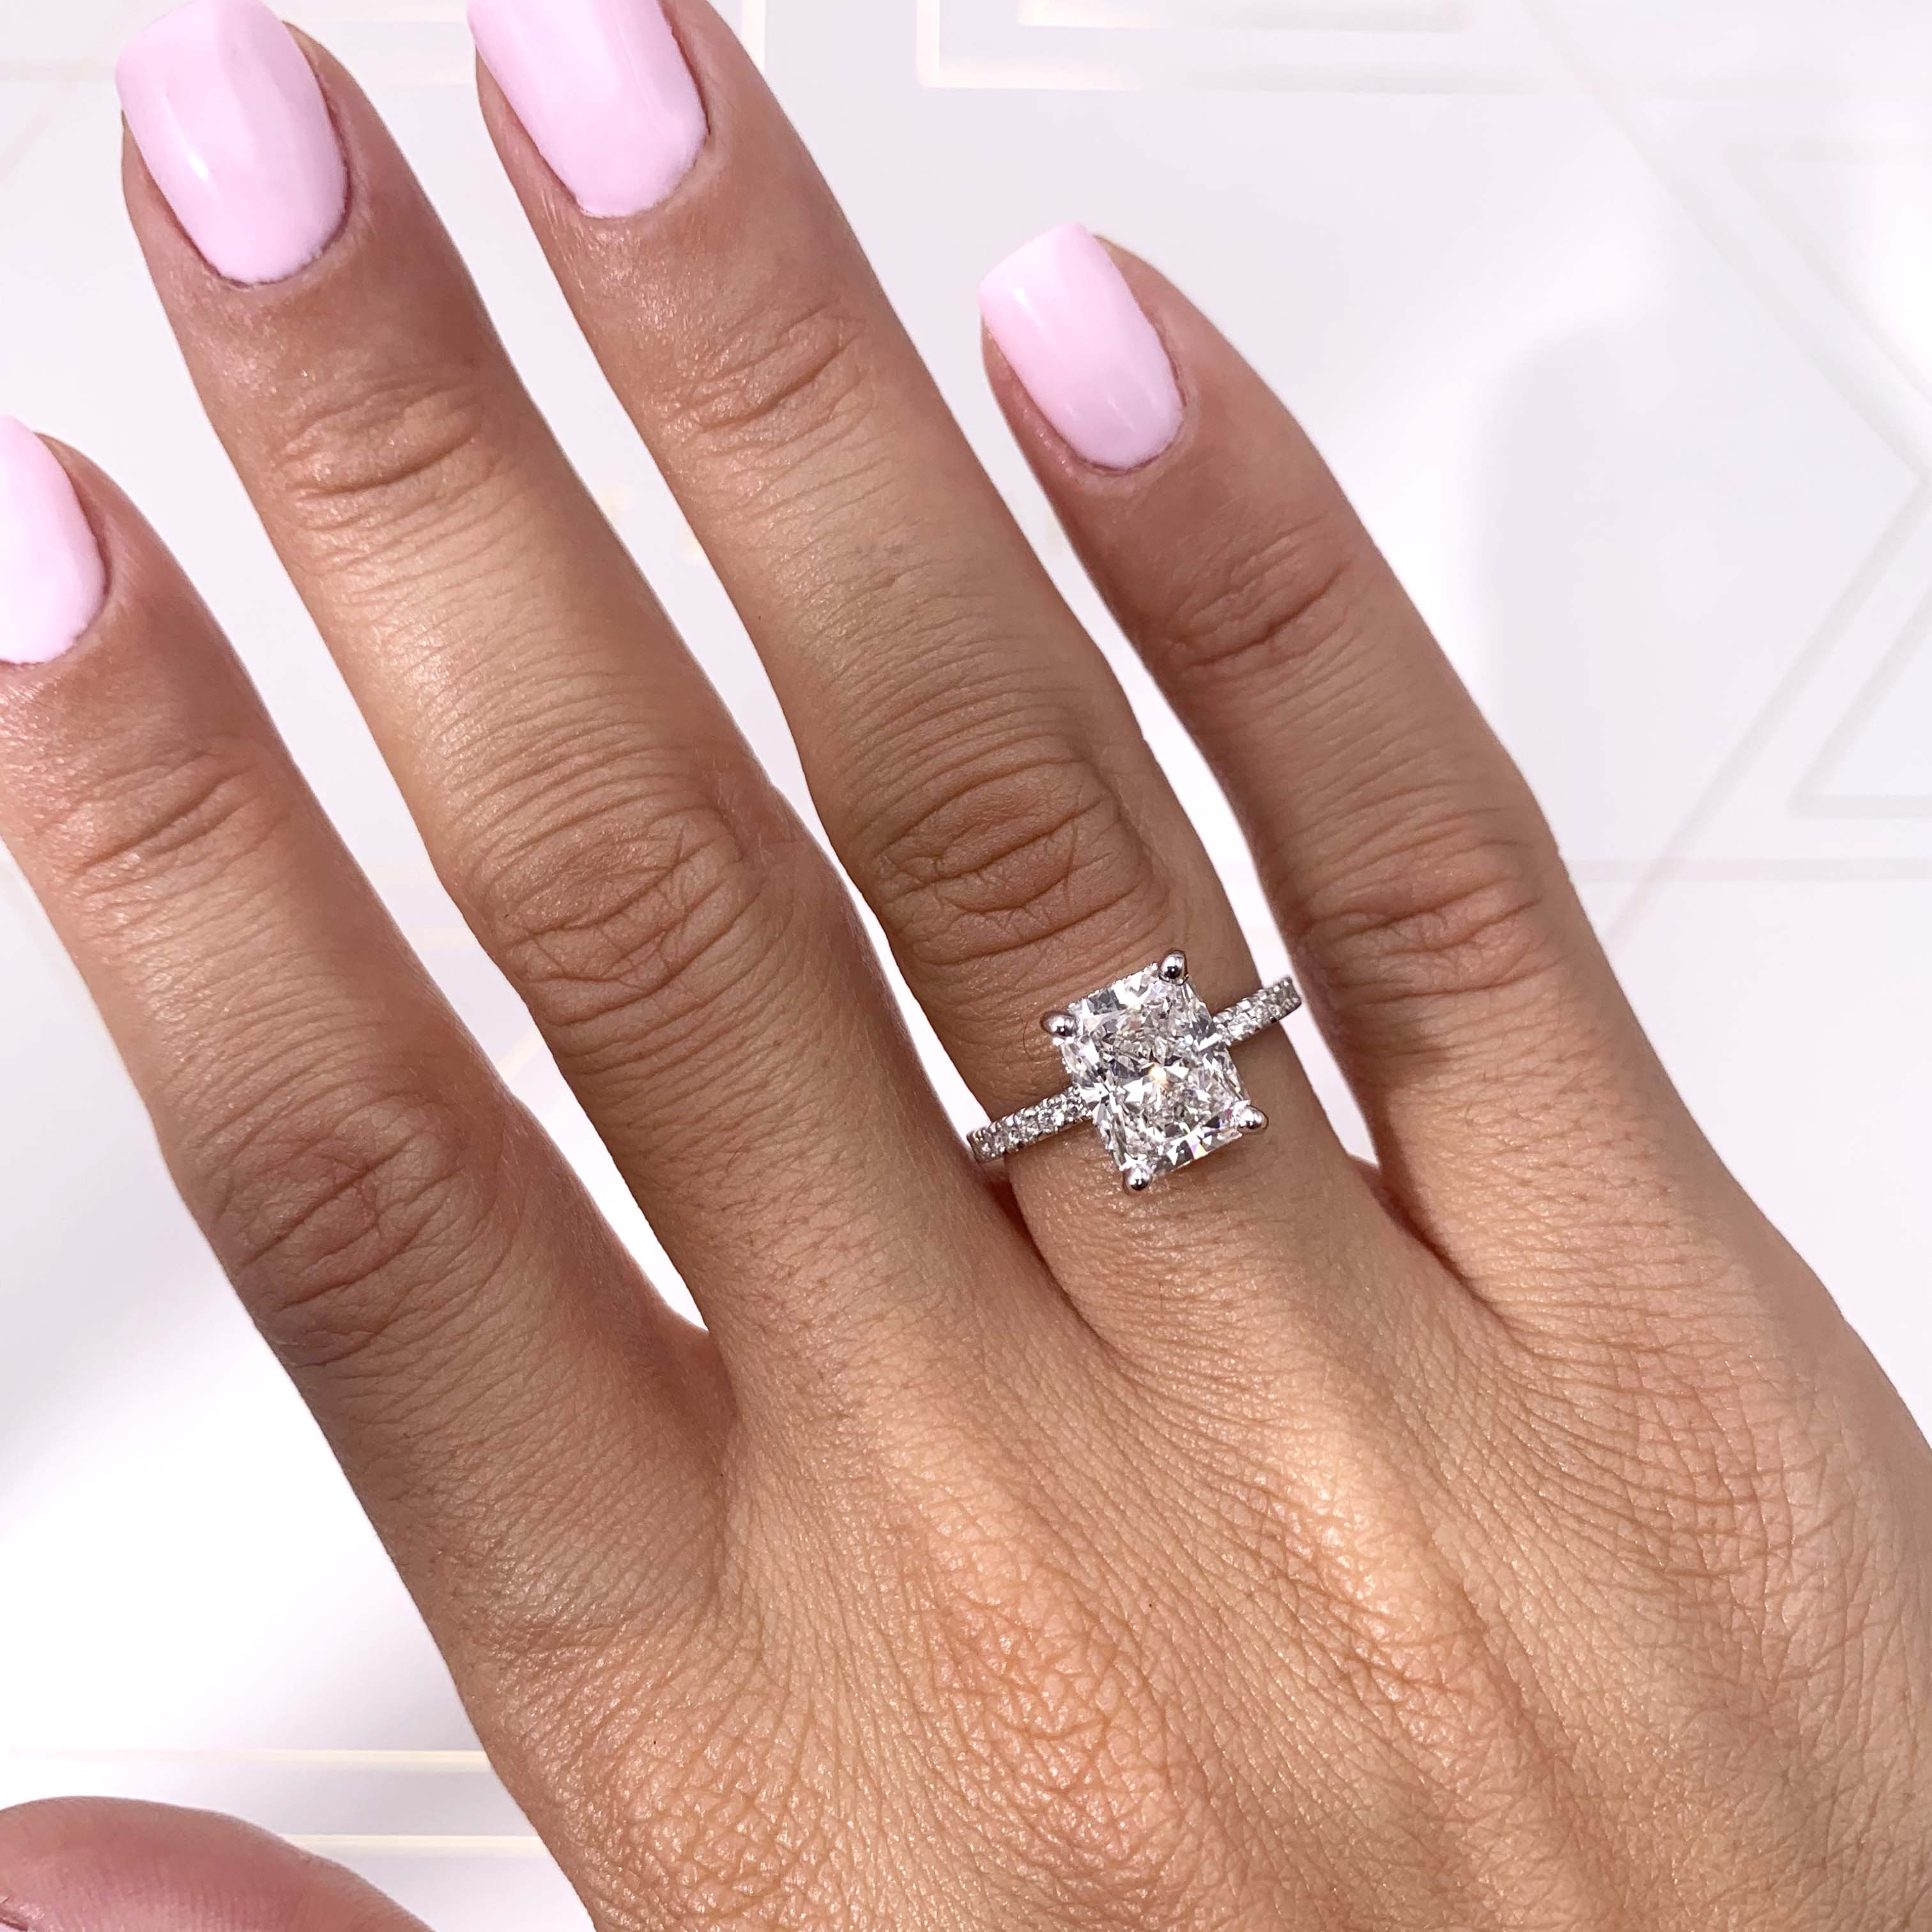 The Luna Lab Grown Ring - 2.5 Carat E VS2 Radiant Hidden Halo Engagement Ring - 14K White Gold #LG10009